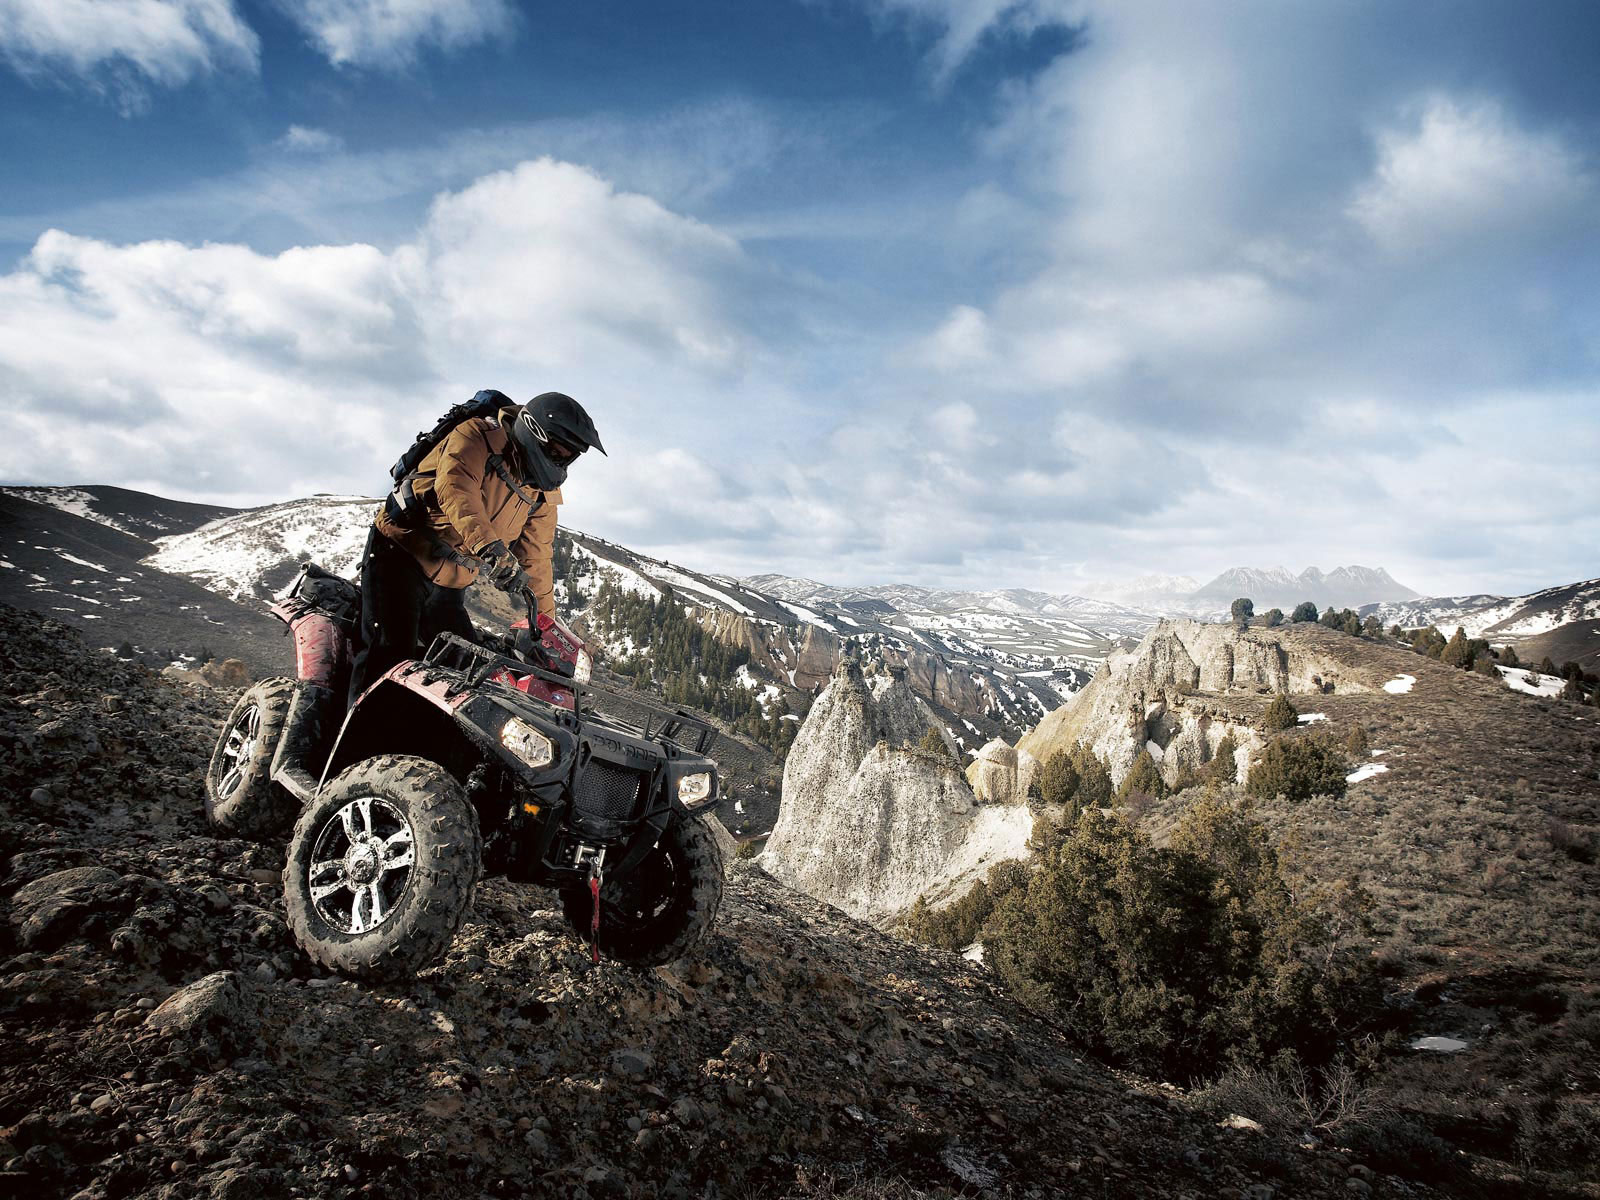 2010 polaris sportsman 850 xp accident lawyers, wallpapers